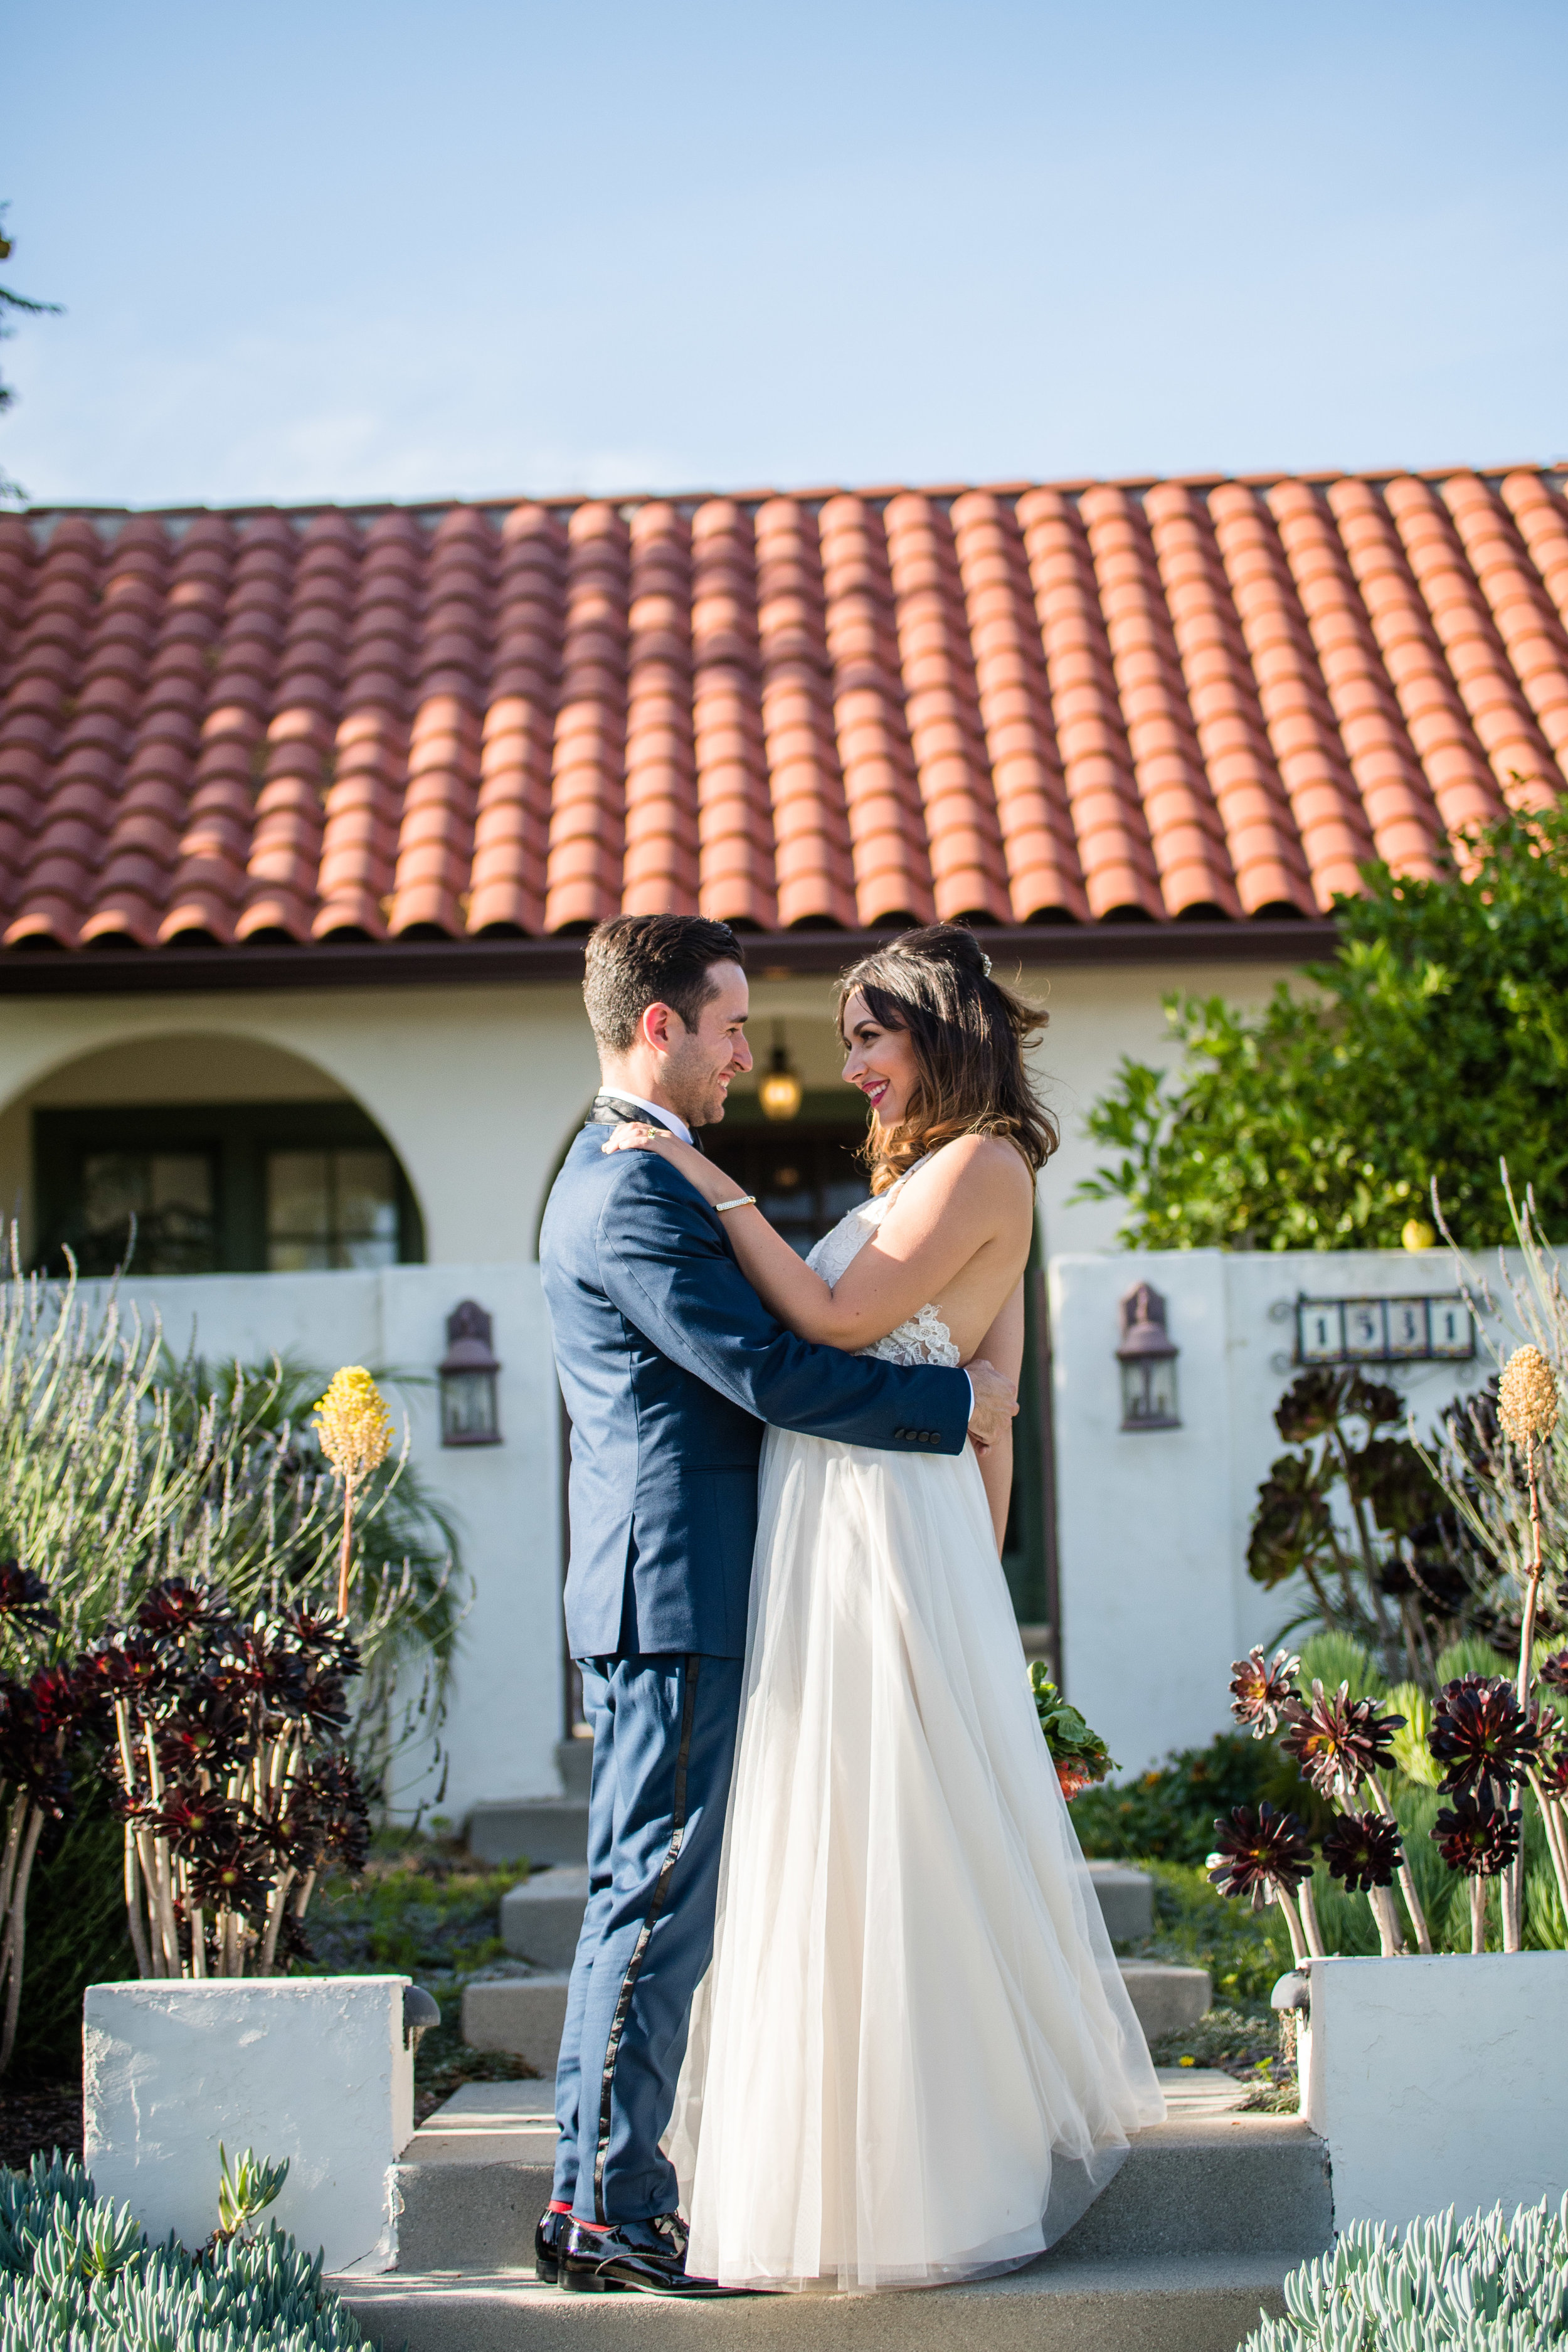 Vibrant Fiesta Backyard Wedding Reception bride and groom pose in front of reception home.jpg